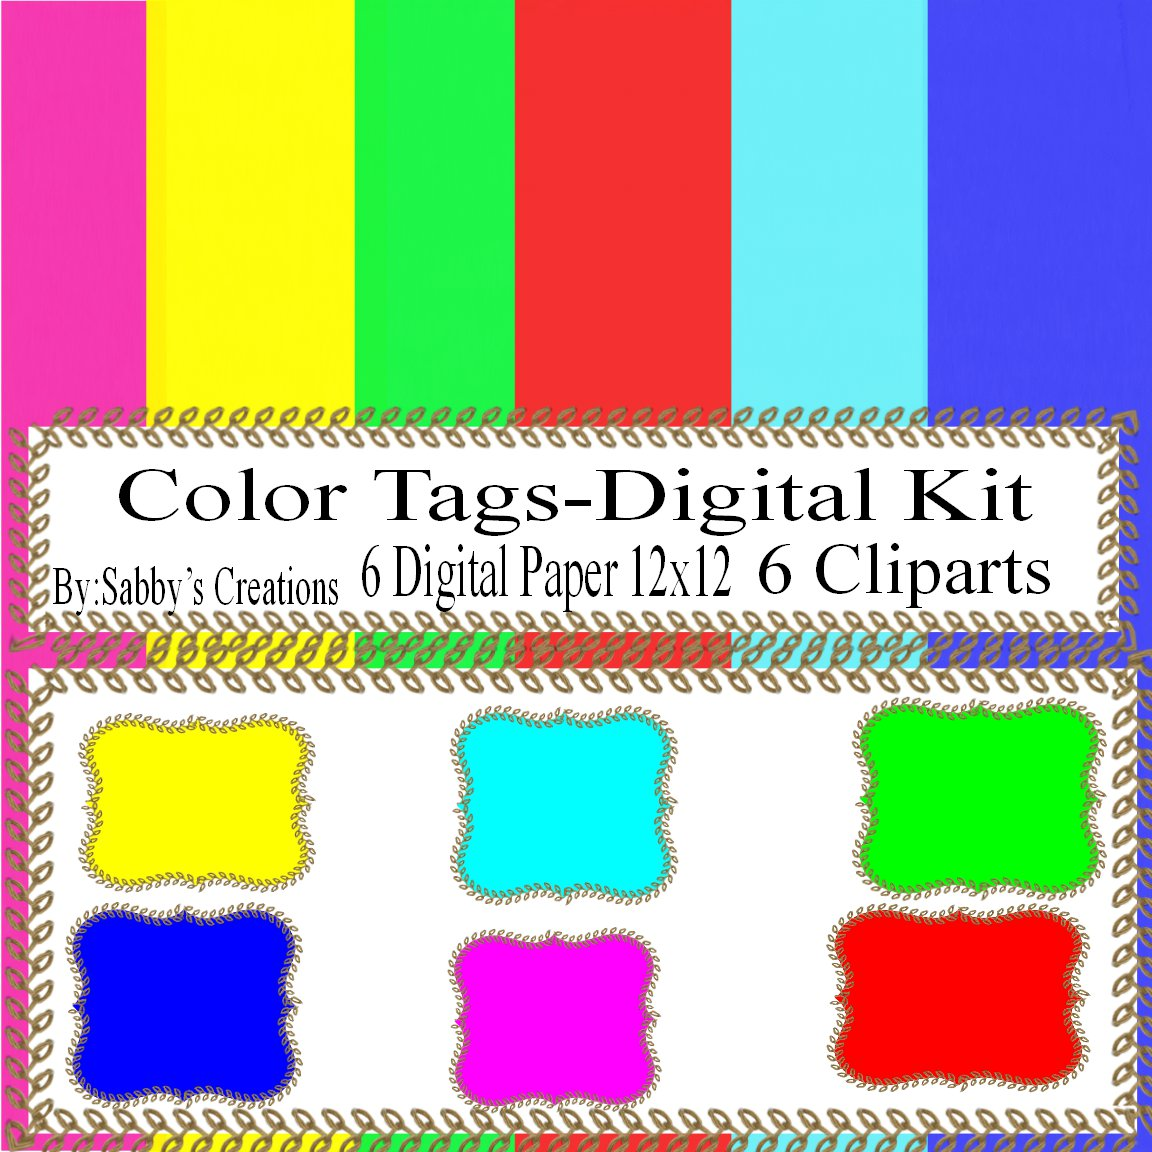 Tags Digital Kit 1A-Digtial Paper-Art Clip-Gift Tag-Jewelry-T shirt-Notebook